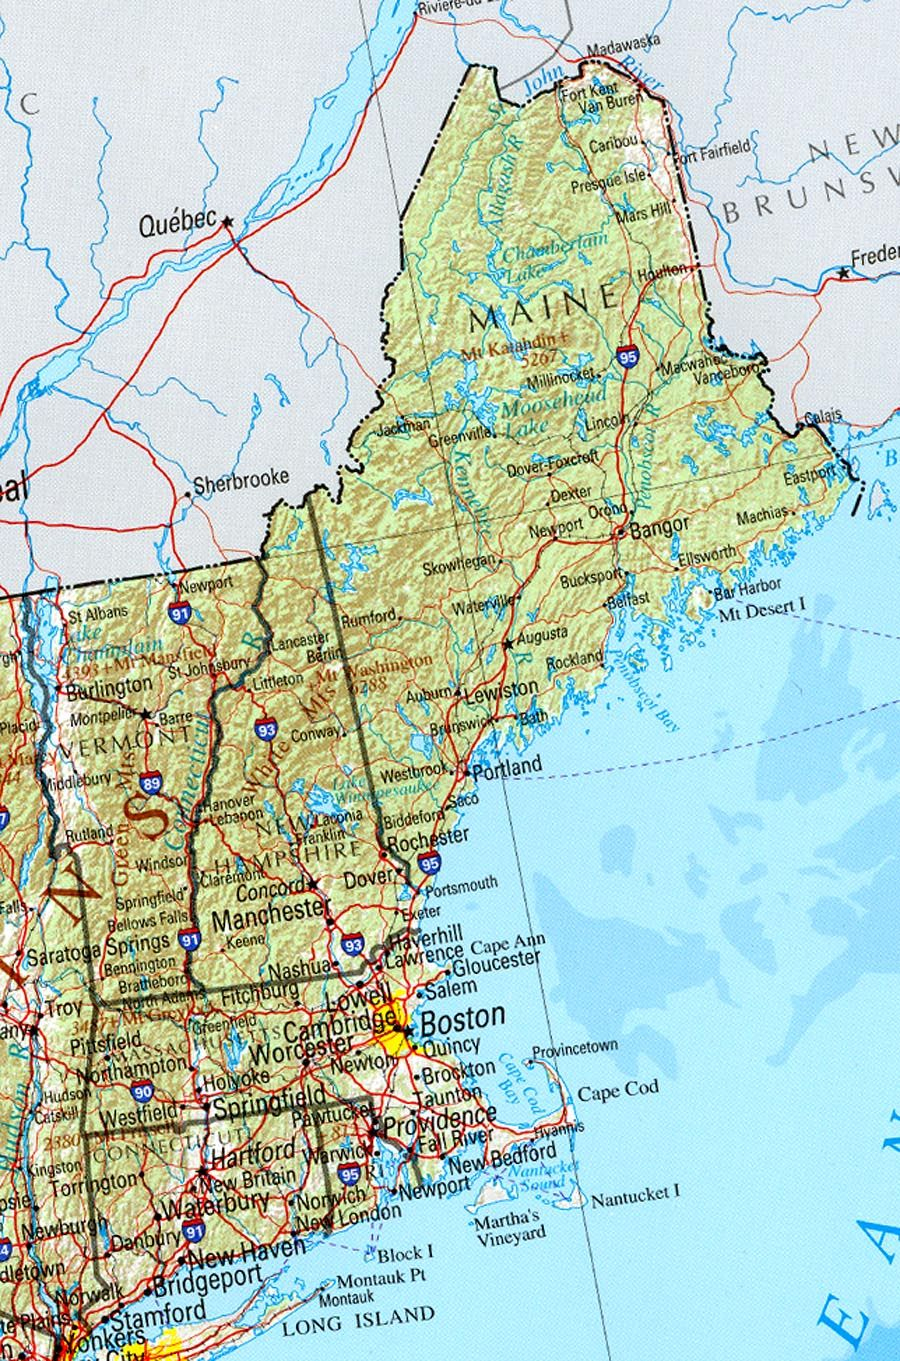 Reference Map Of New England State, Ma Physical Map   Crafts - Printable Map Of Maine Coast